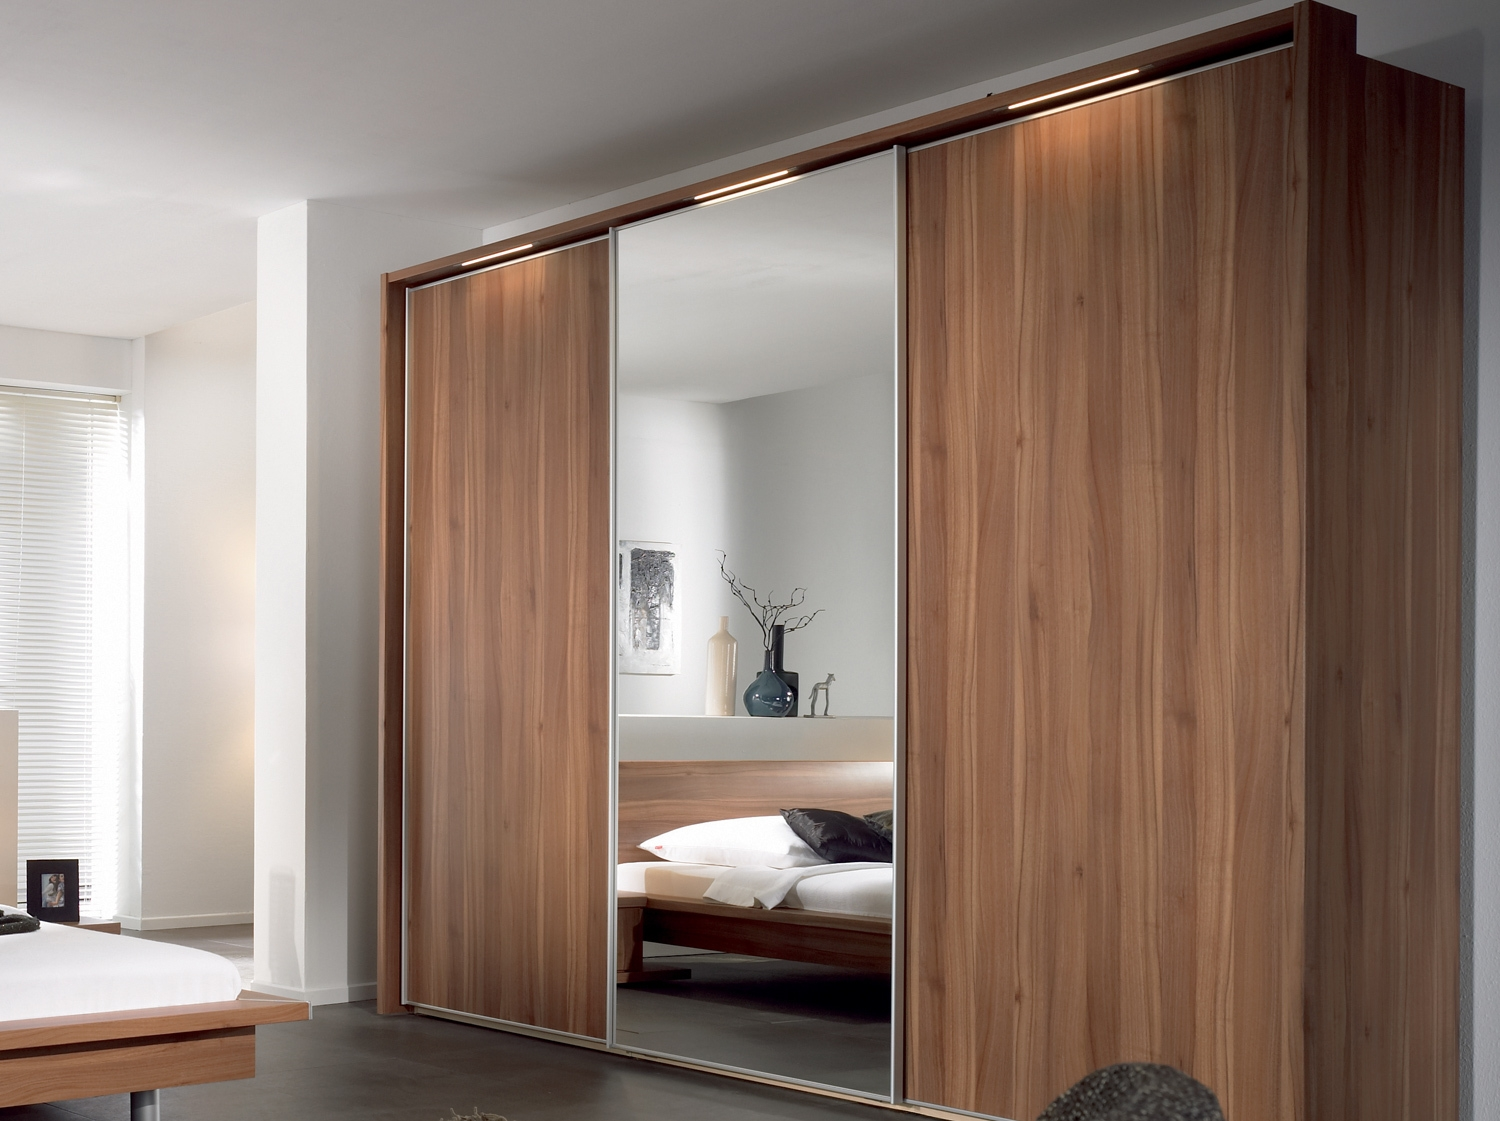 Bedroom Furniture Wooden Wardrobe Cabinet With Mirror Classic Intended For Large Wooden Wardrobes (Image 8 of 25)